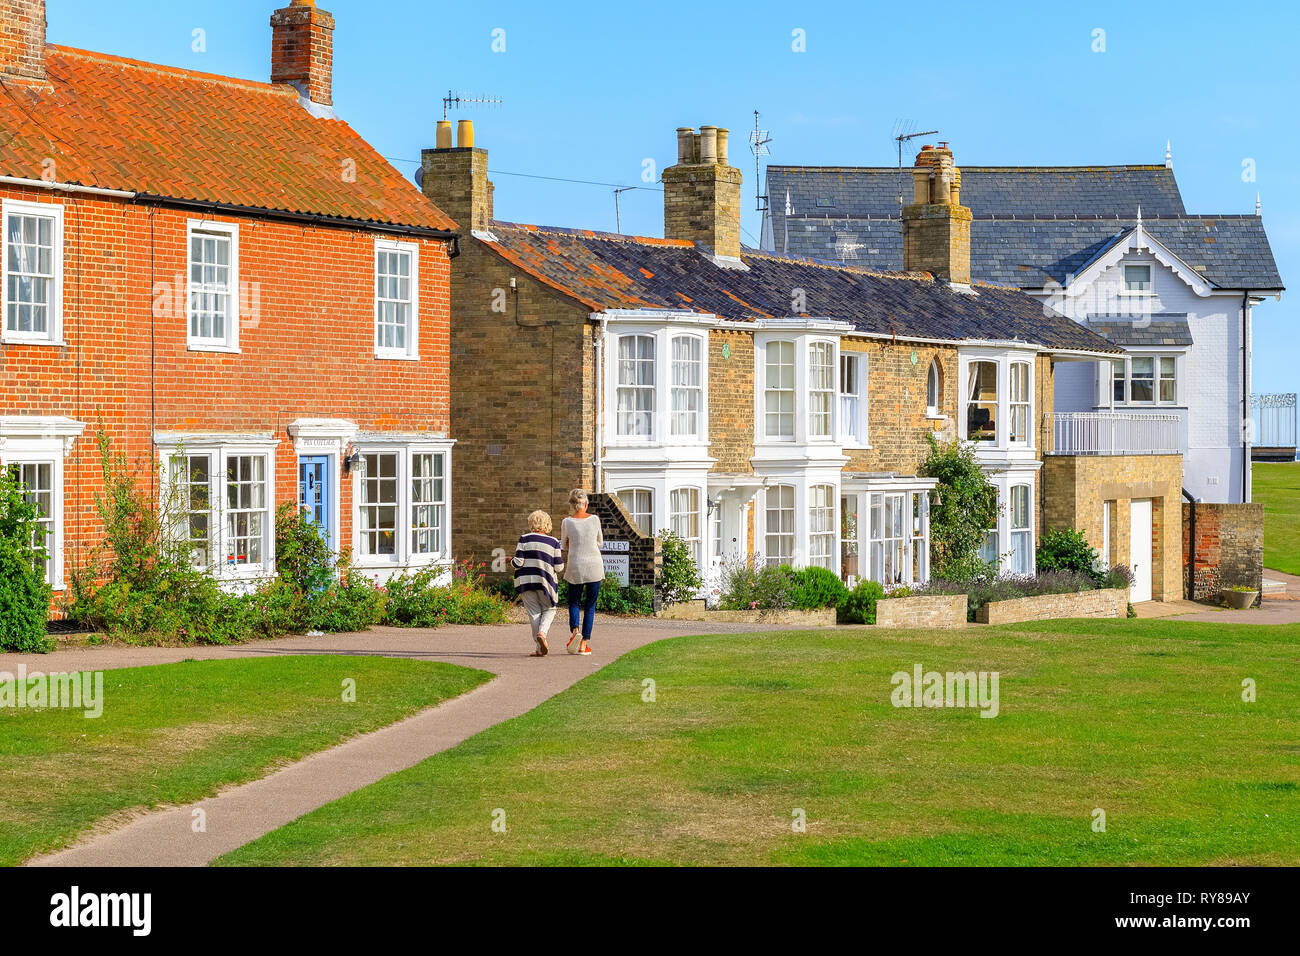 Southwold, UK - September 6, 18 - Back view of two female tourists walking in the popular seaside town Southwold of the UK - Stock Image